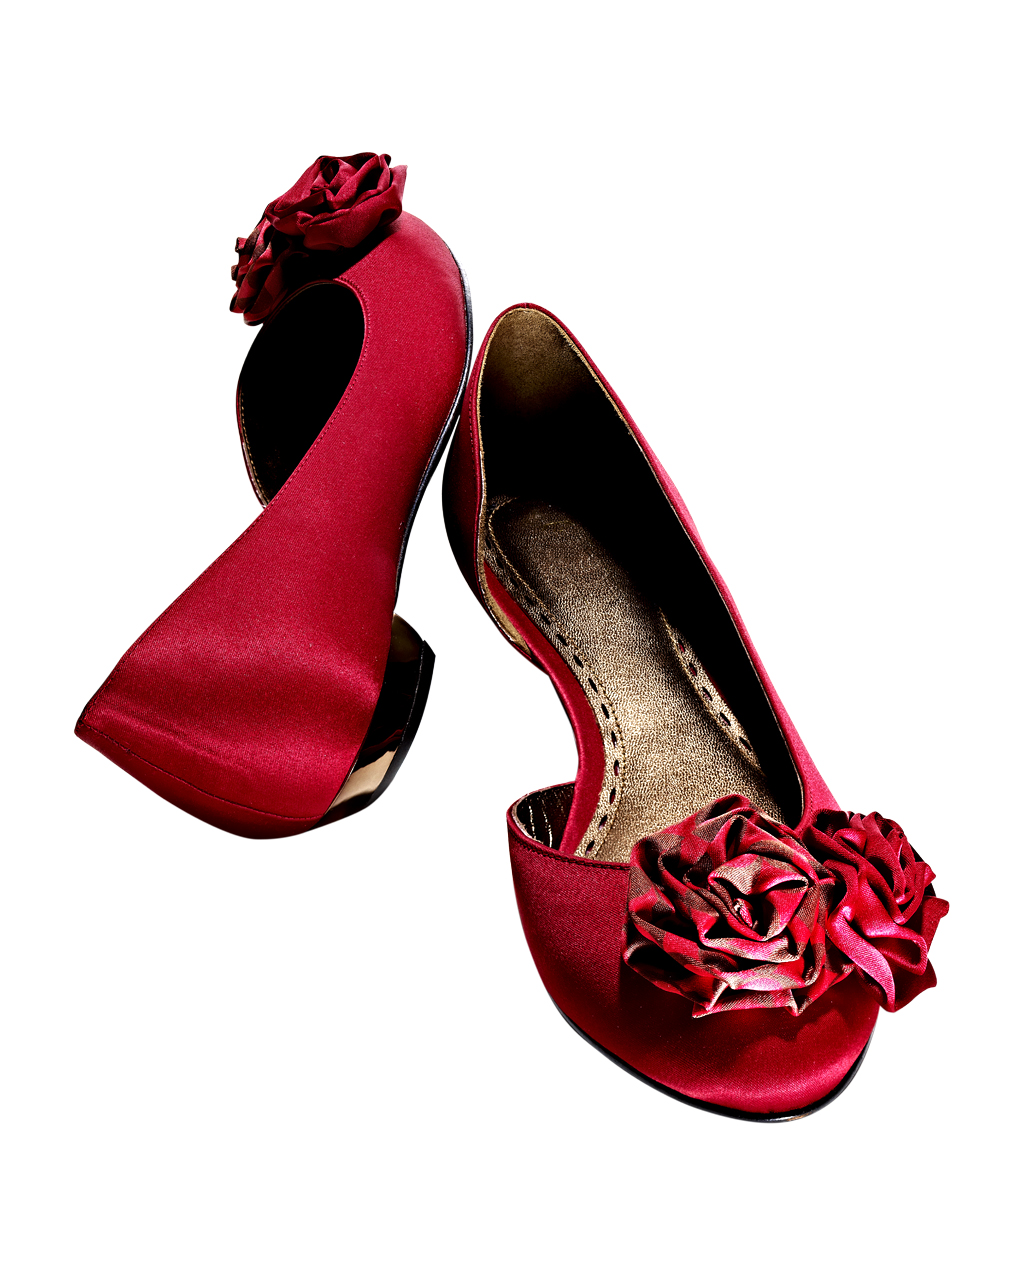 Flats in festive colors with rosettes tj maxx and for Ballet shoes christmas decoration